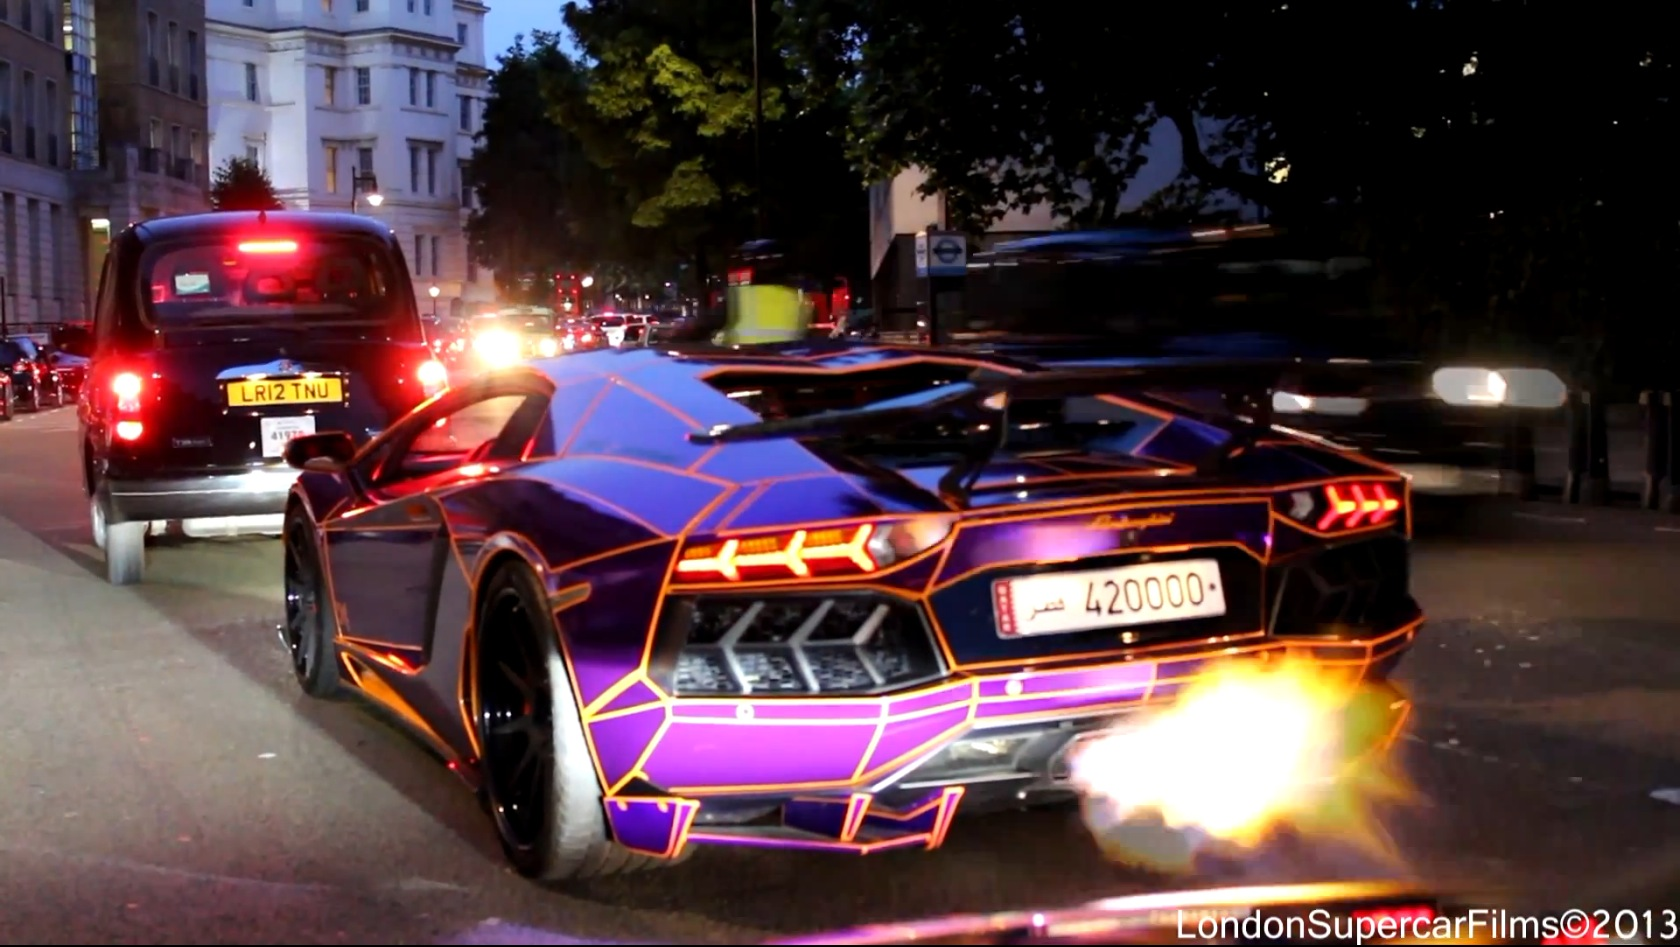 in case you missed it we ran a piece on this tron tastic purple orange chrome glow in the dark lamborghini aventador equipped with adv1 custom